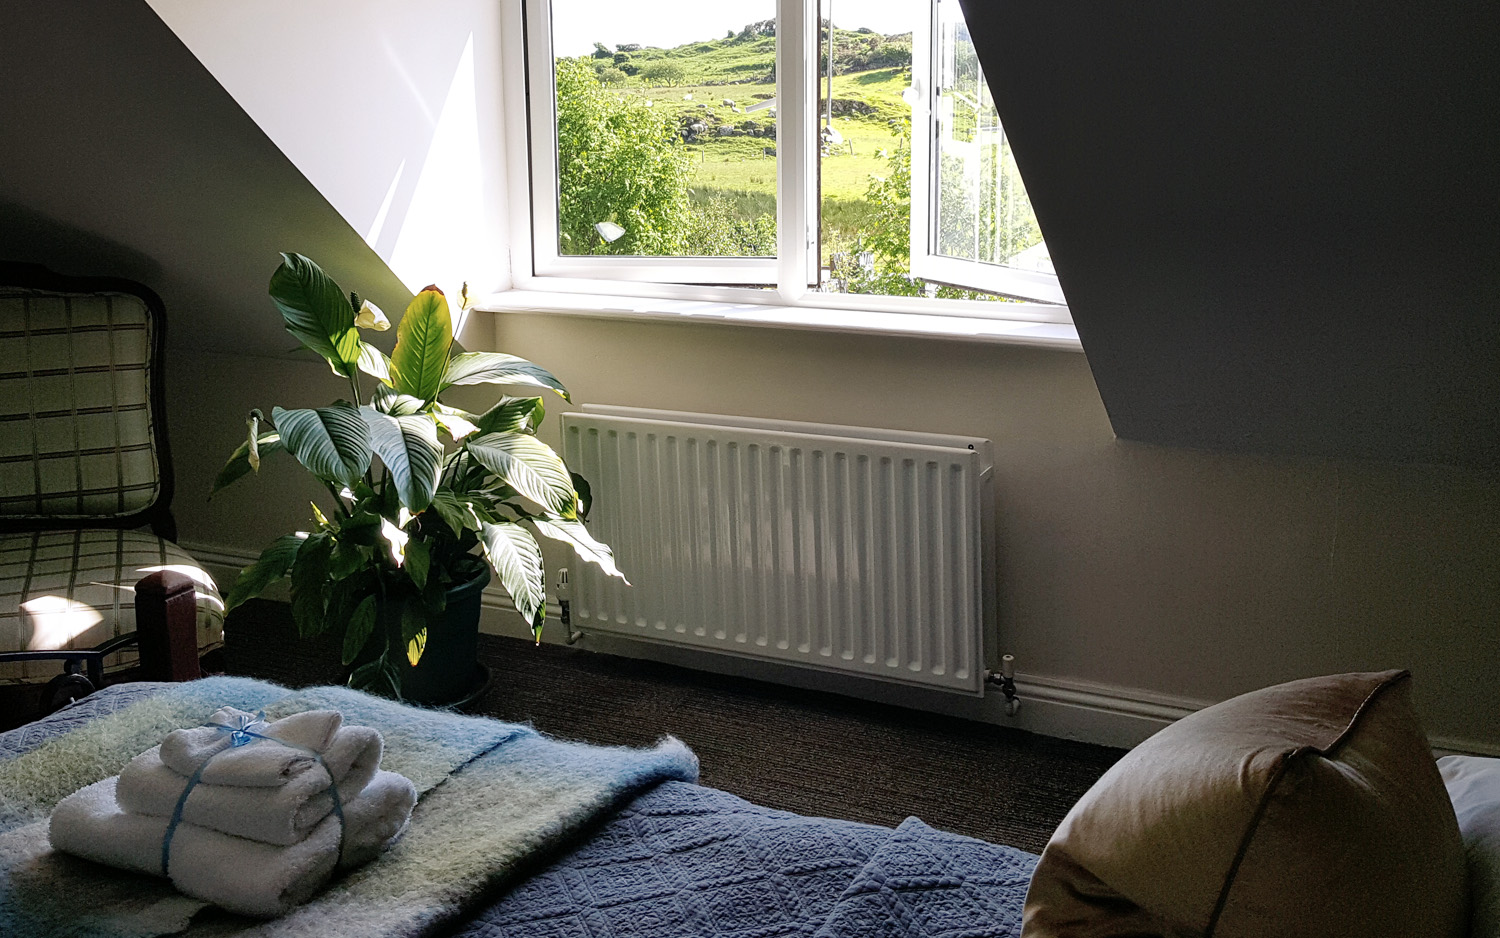 Double bed accommodation, room with view of Clifden Castle entrance, www.hillside-lodge.com